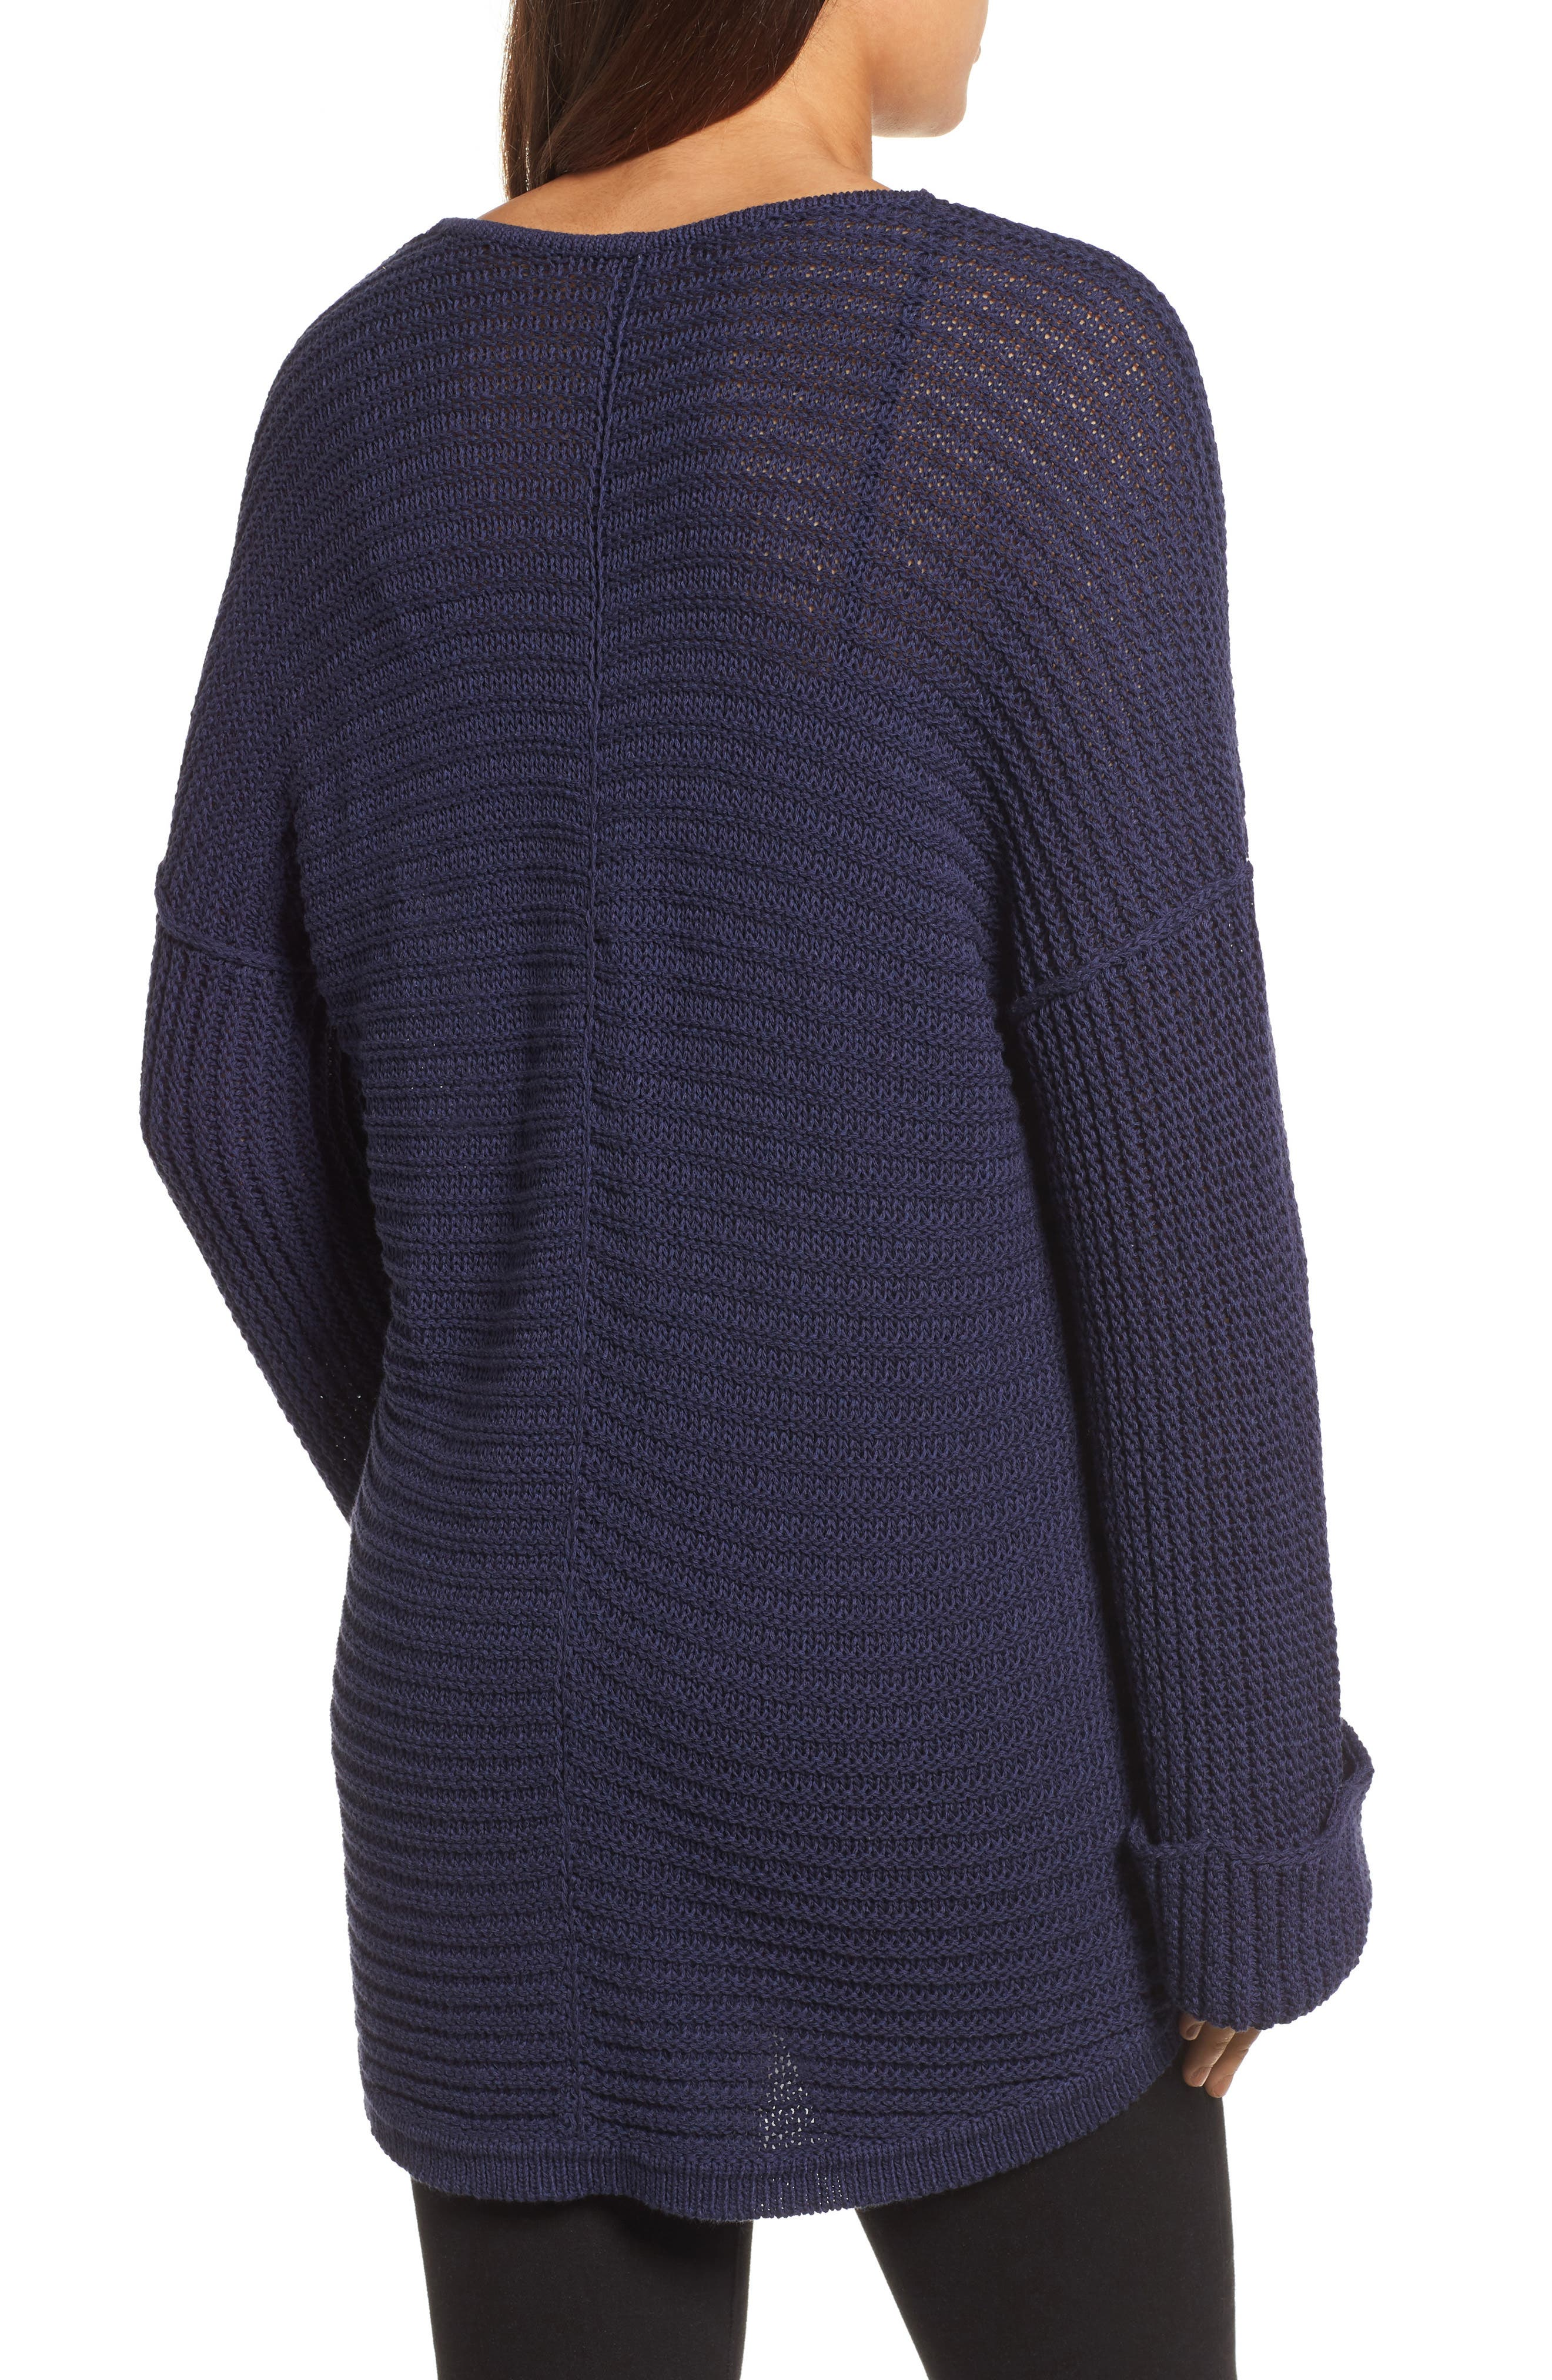 Cuffed Sleeve Sweater,                             Alternate thumbnail 5, color,